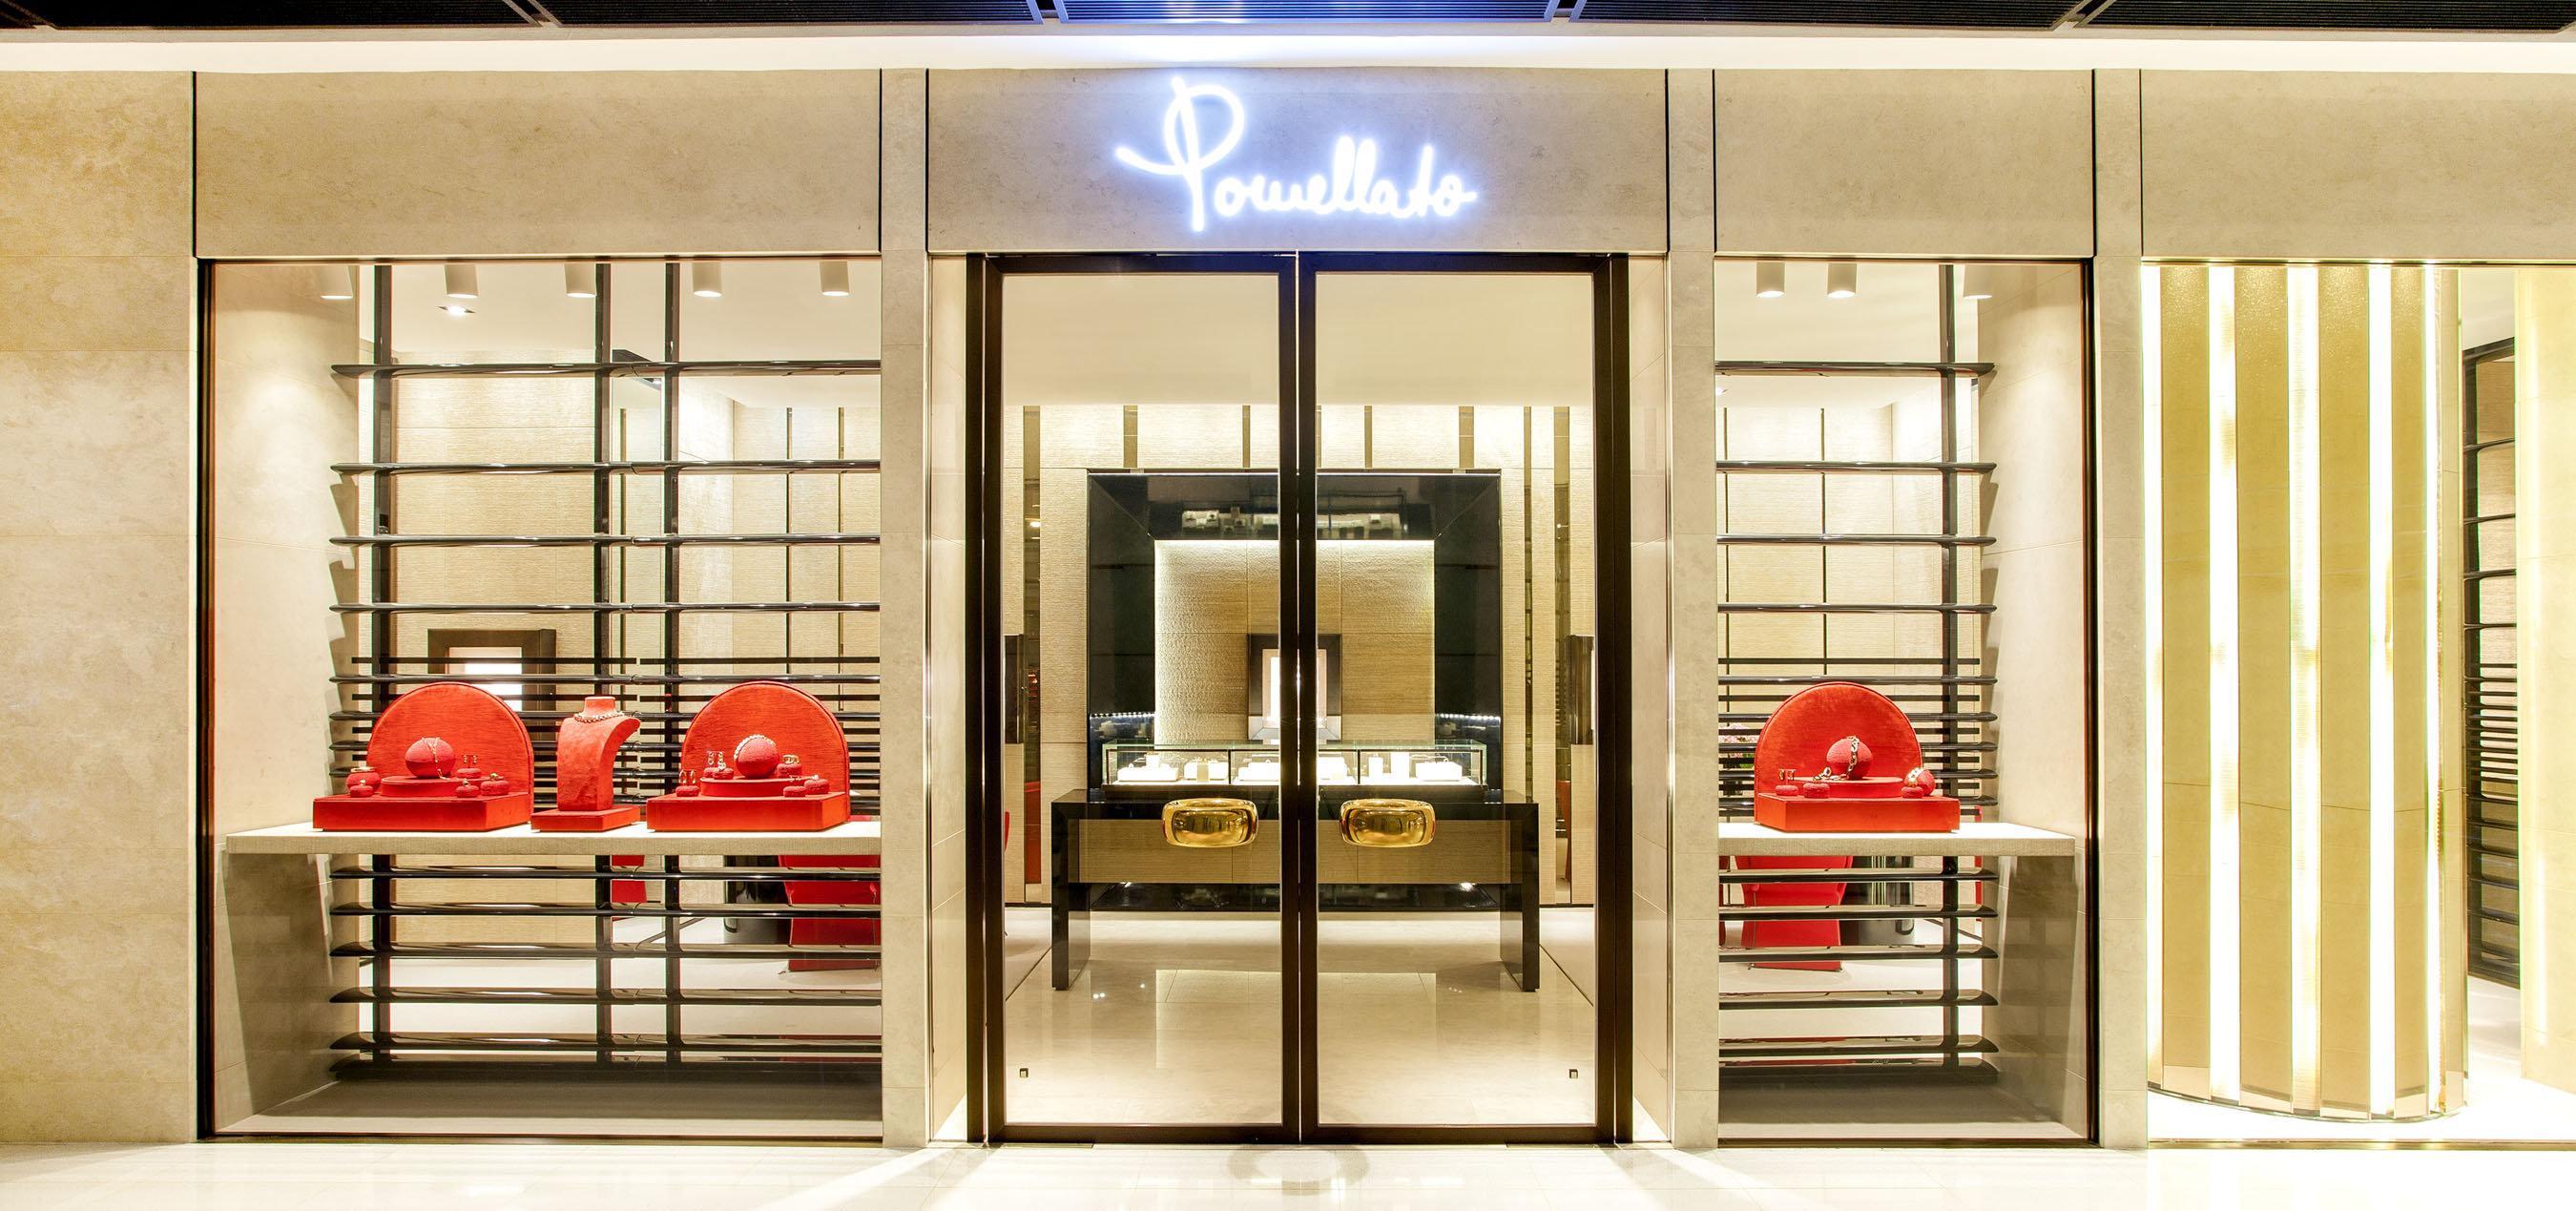 Italian Fine-jewellery House POMELLATO opens its latest boutique in Hong Kong ifc mall